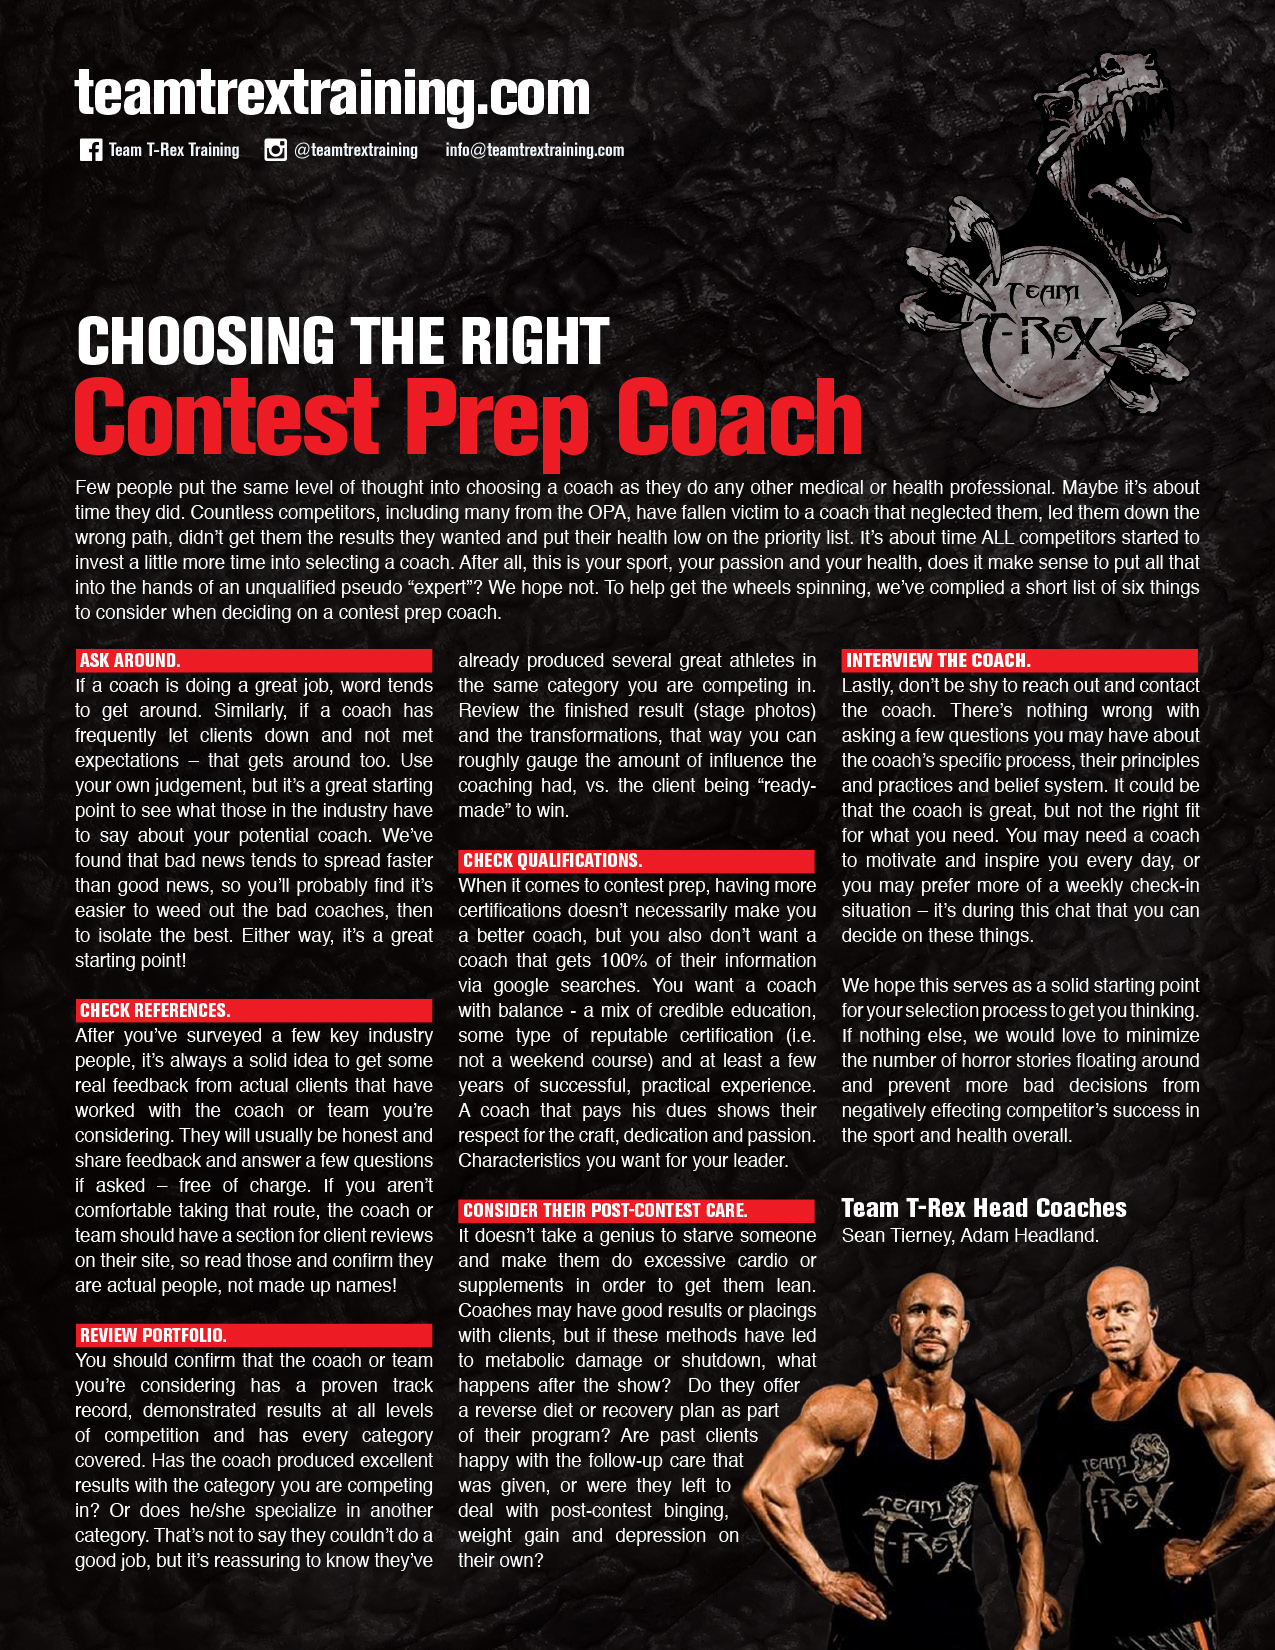 Choosing the Right Contest Coach